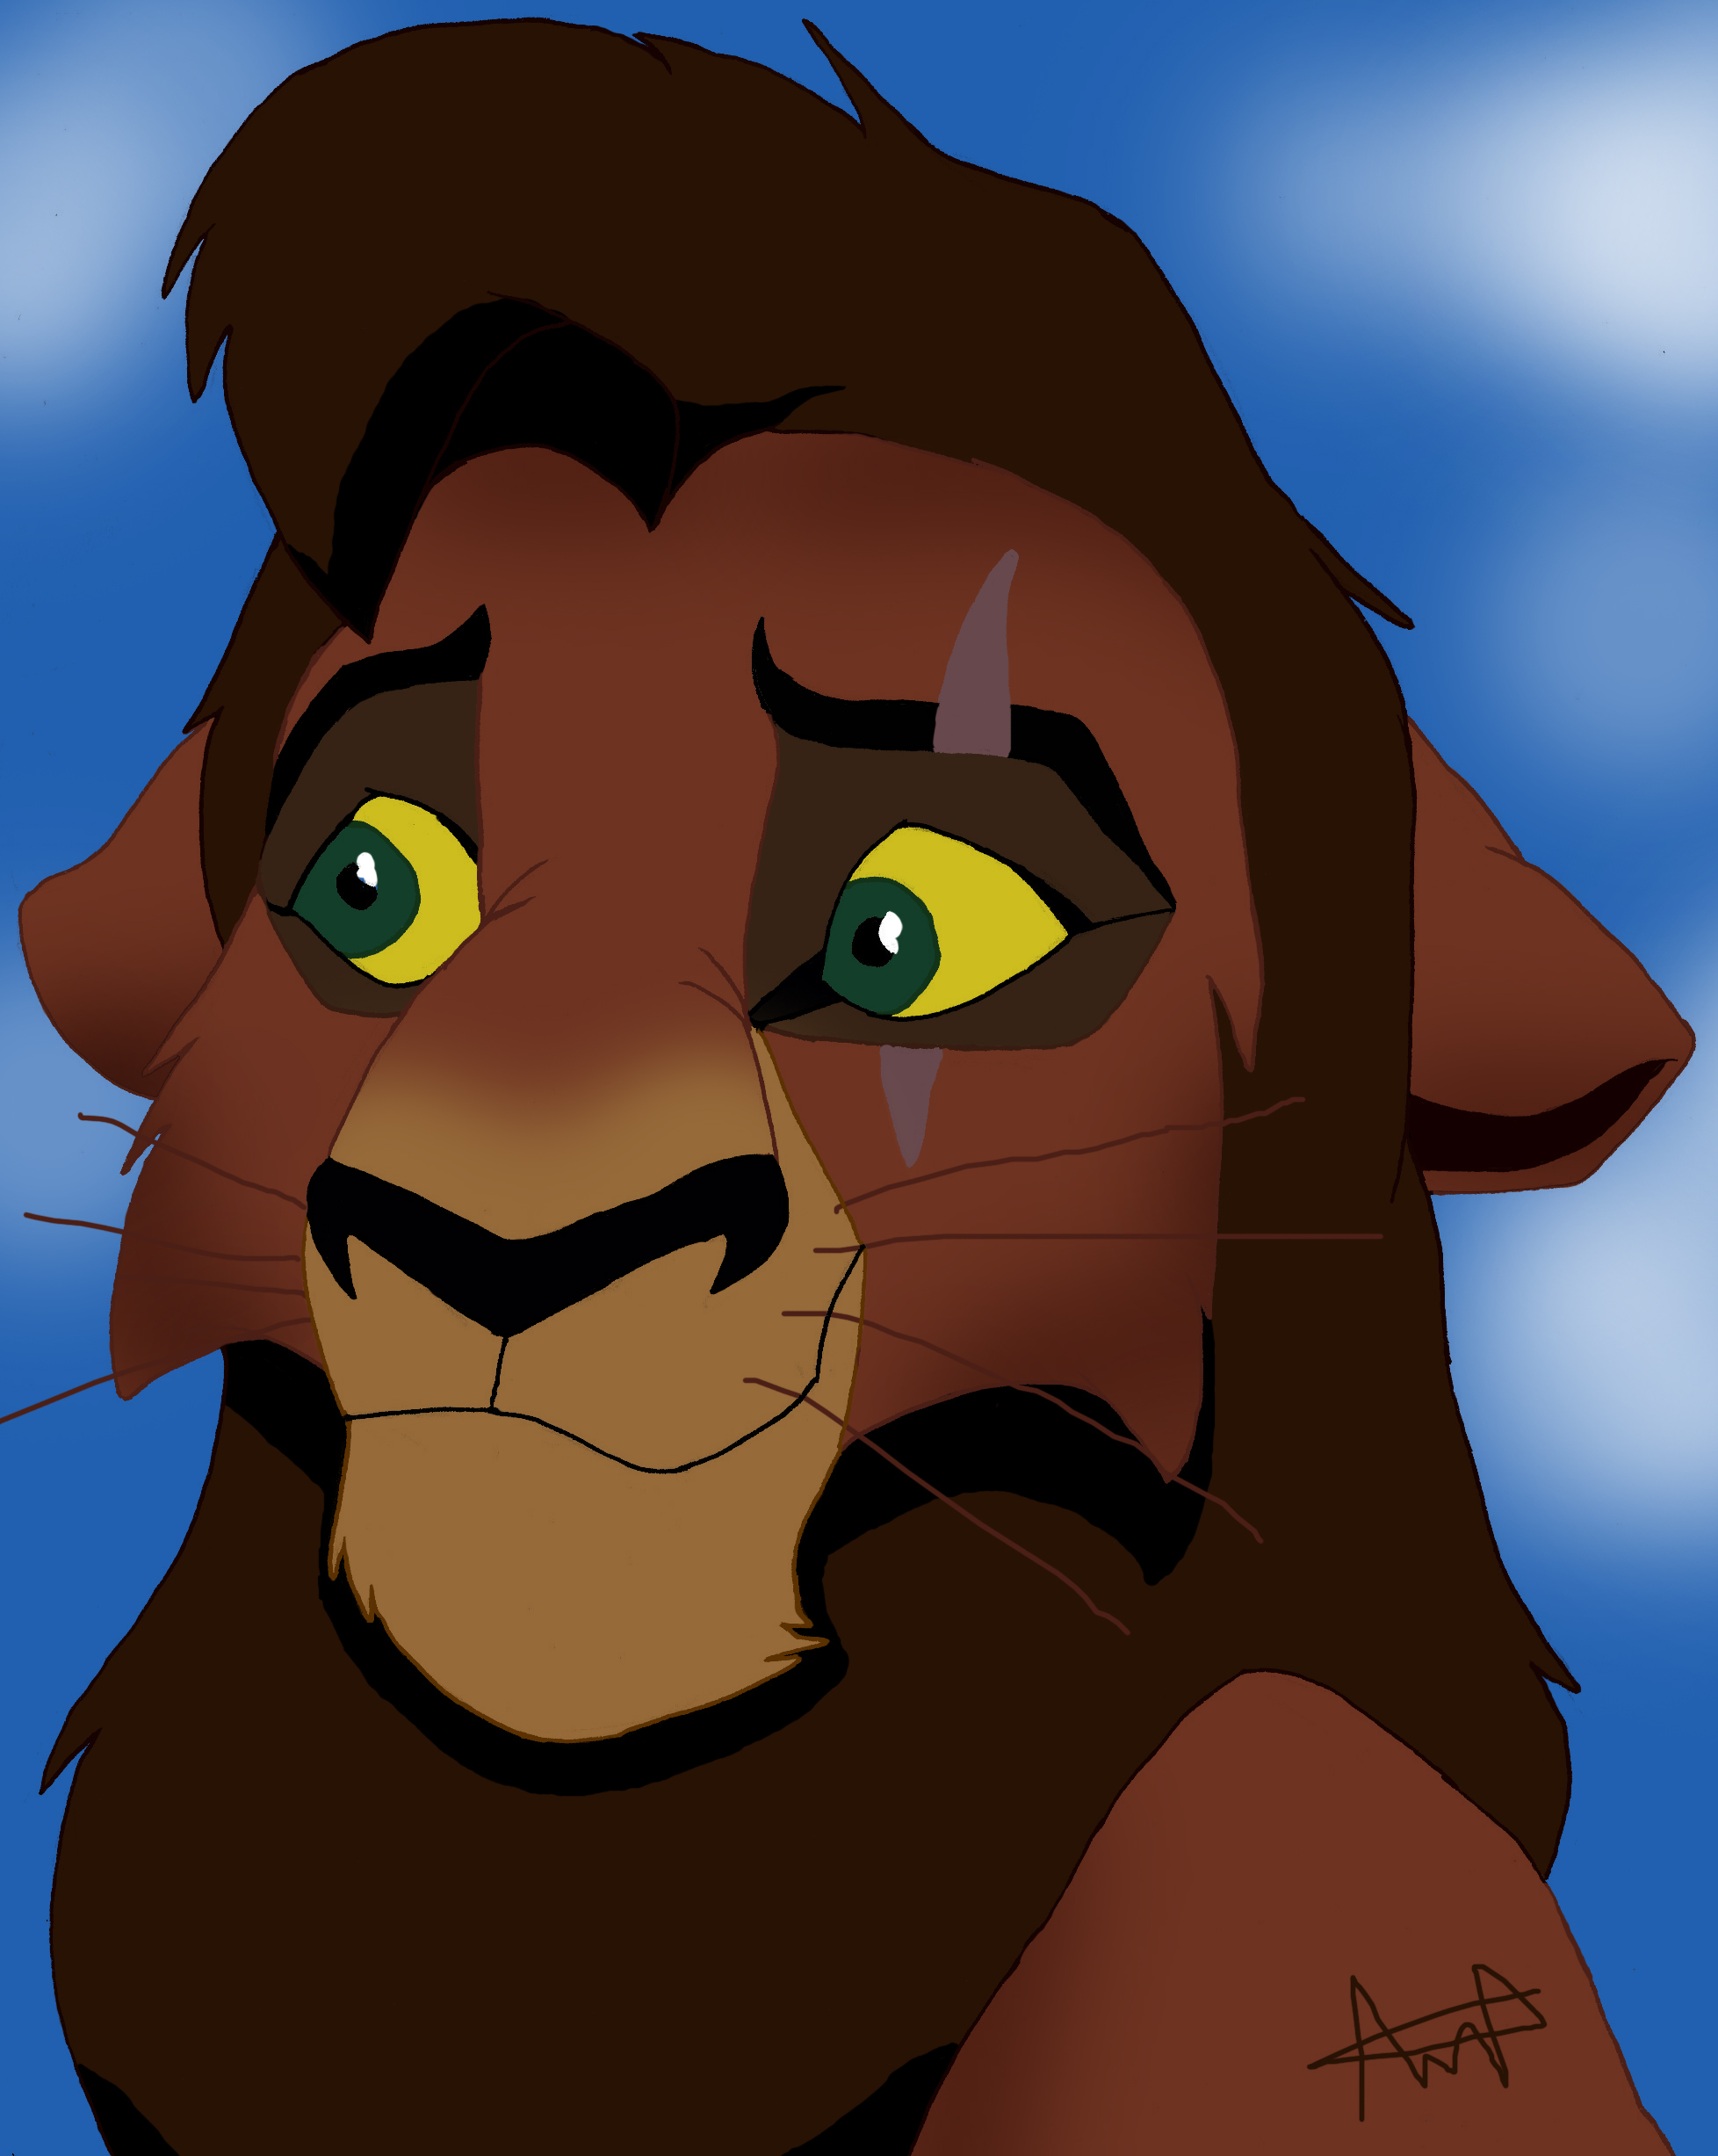 Lion king kovu - photo#1